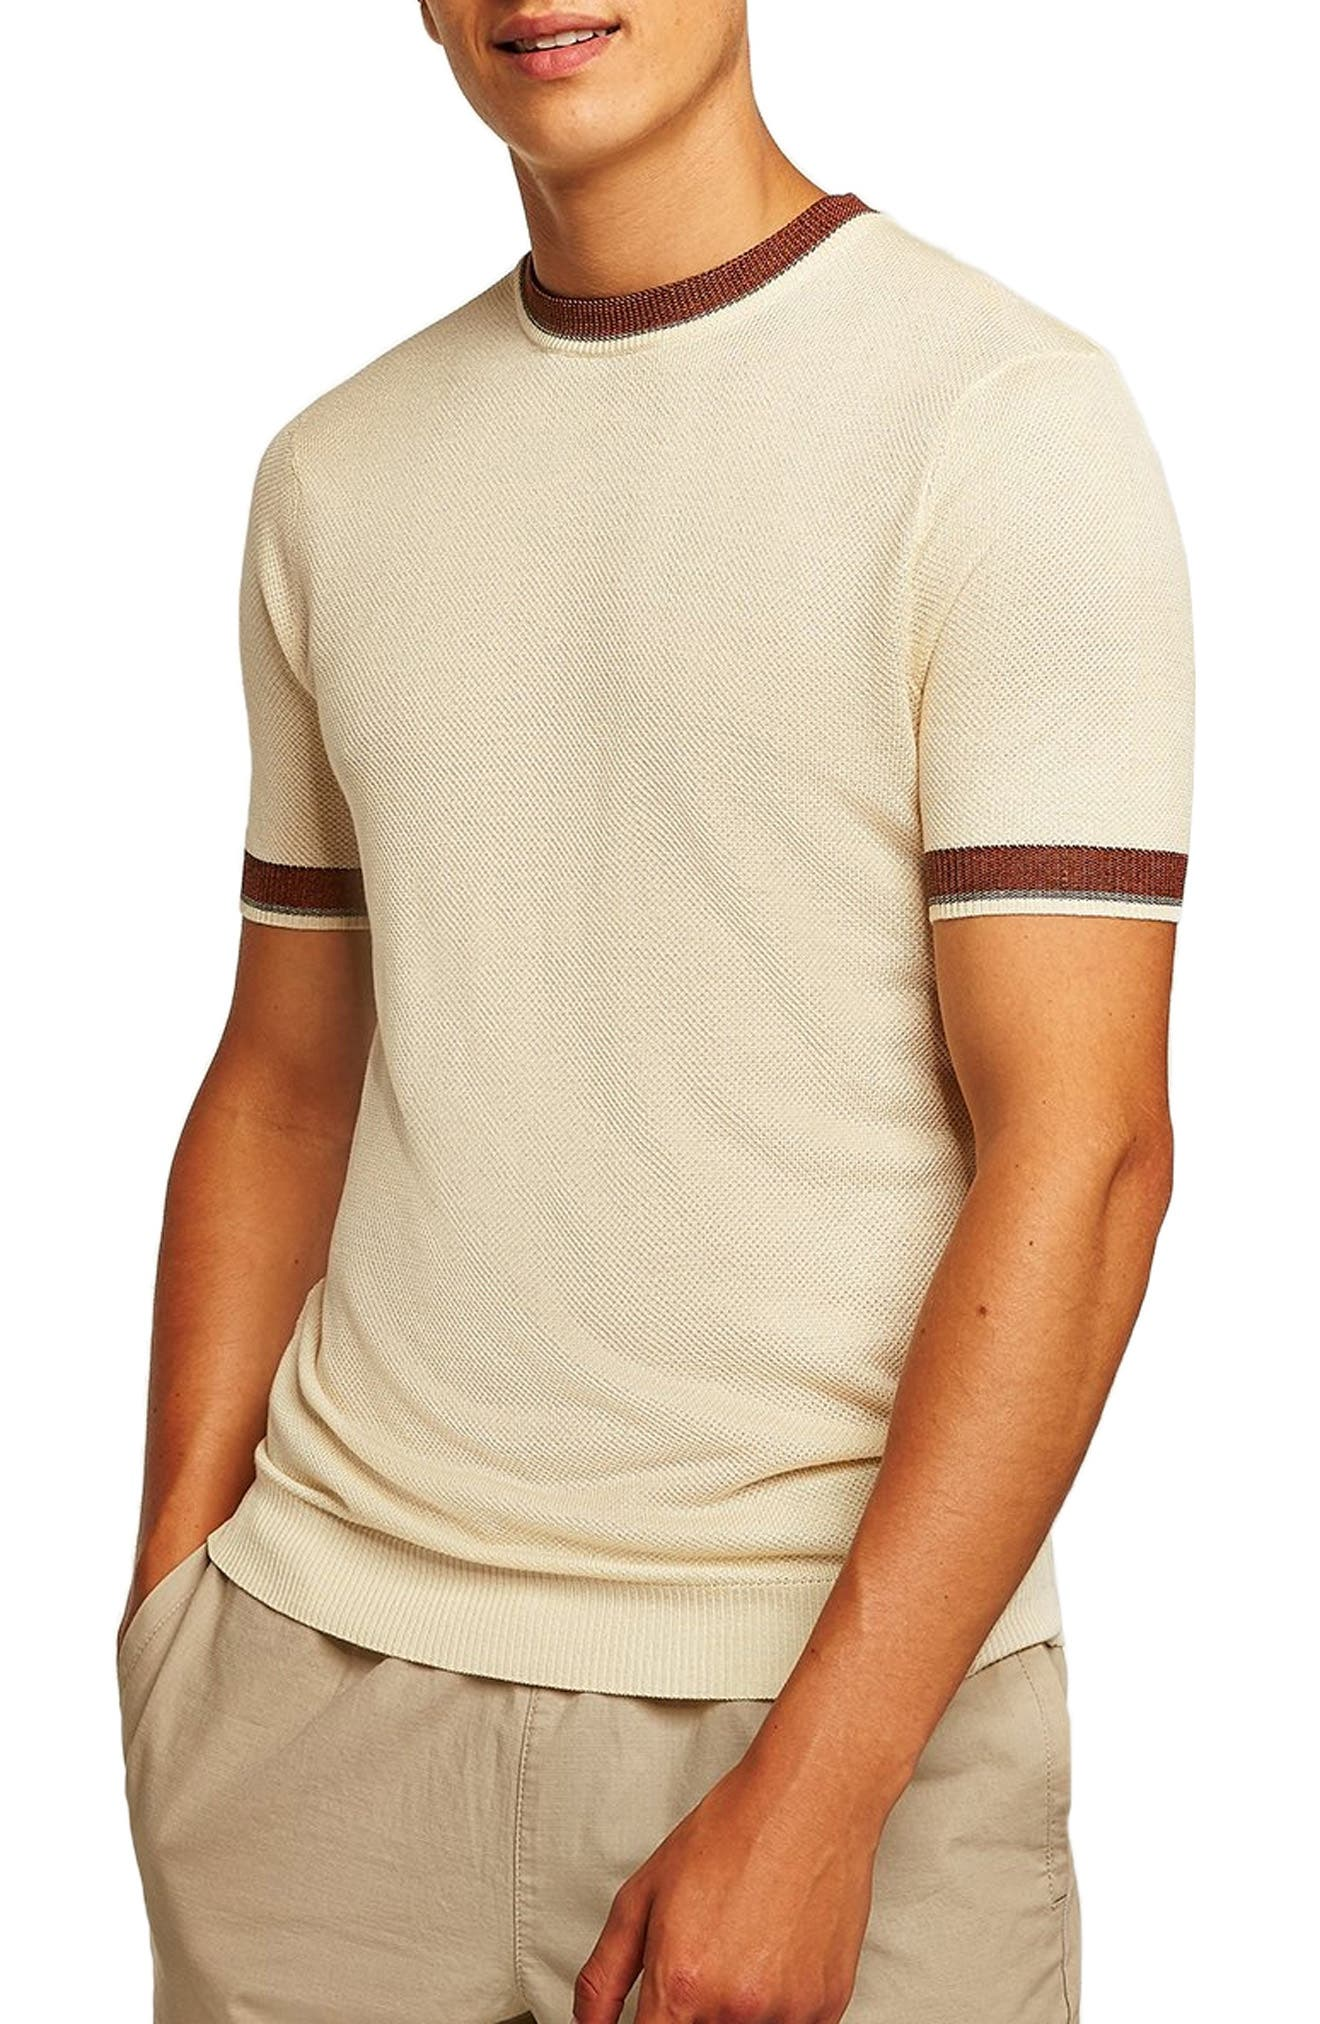 Tipping Classic Fit Short Sleeve Sweater,                             Main thumbnail 1, color,                             CREAM